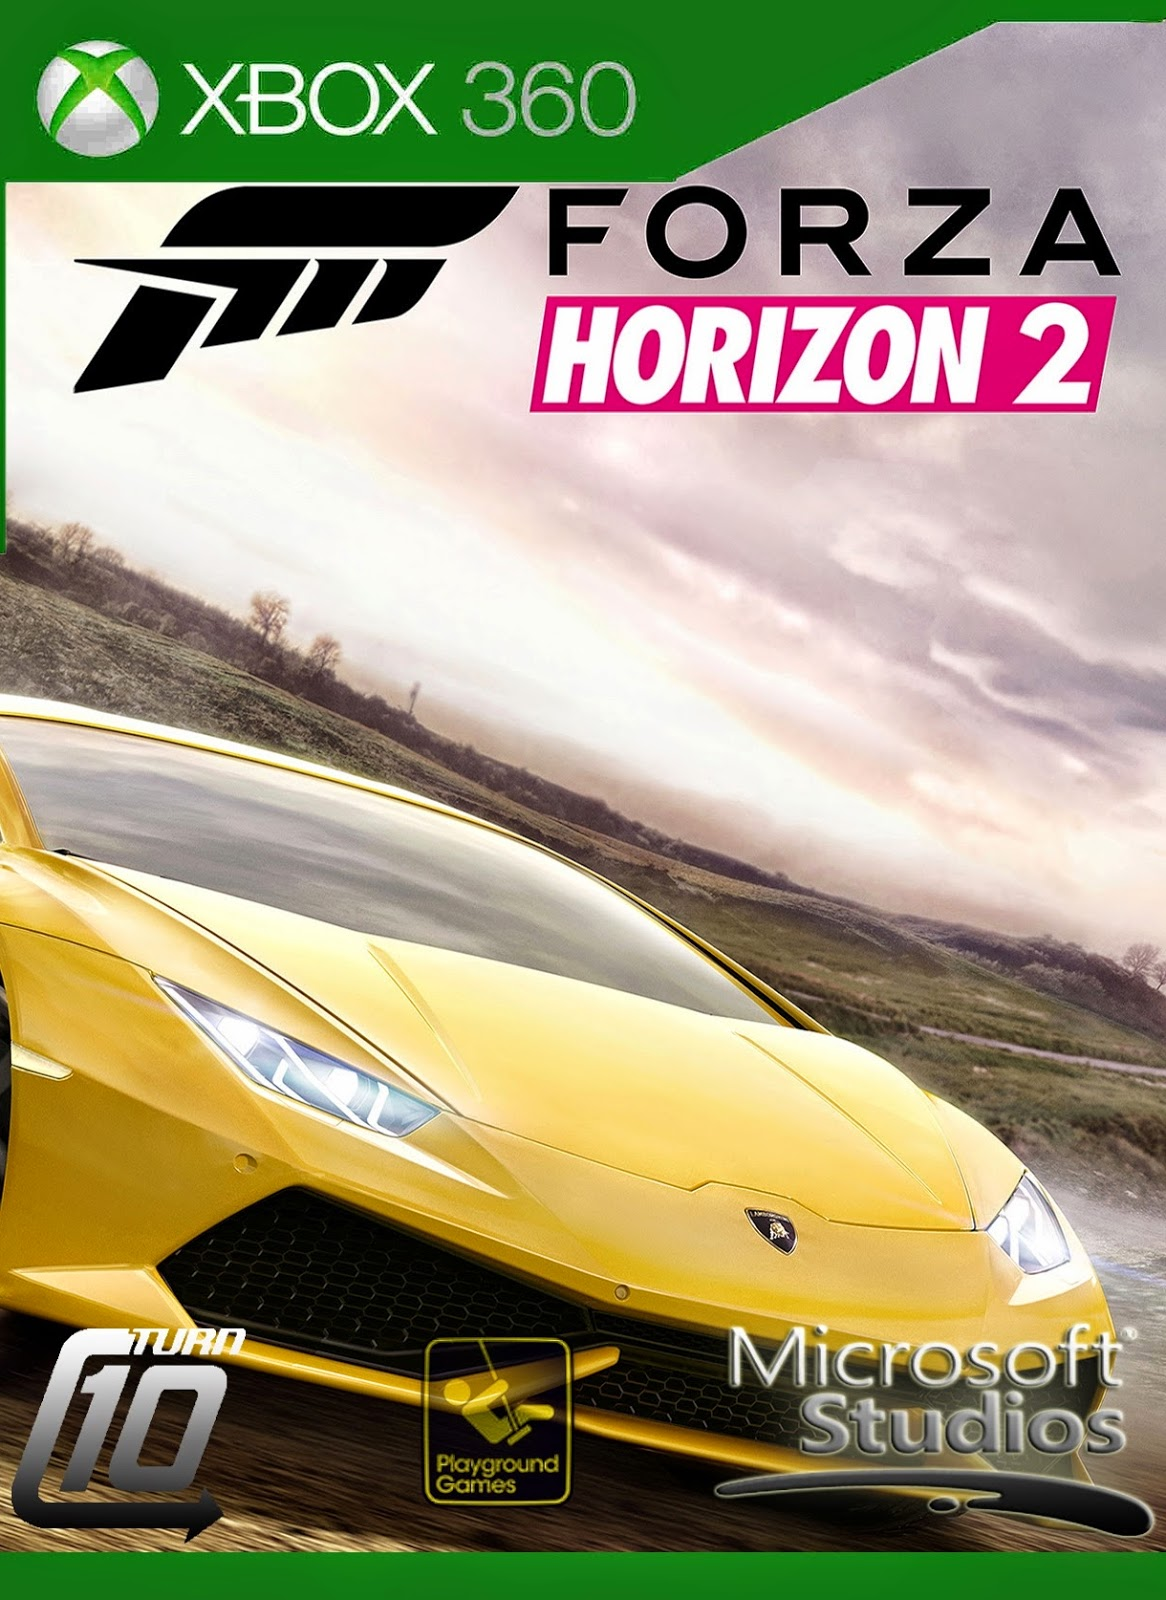 download forza horizon 2 xbox 360 torrent baixar games torrents download jogos via torrent. Black Bedroom Furniture Sets. Home Design Ideas